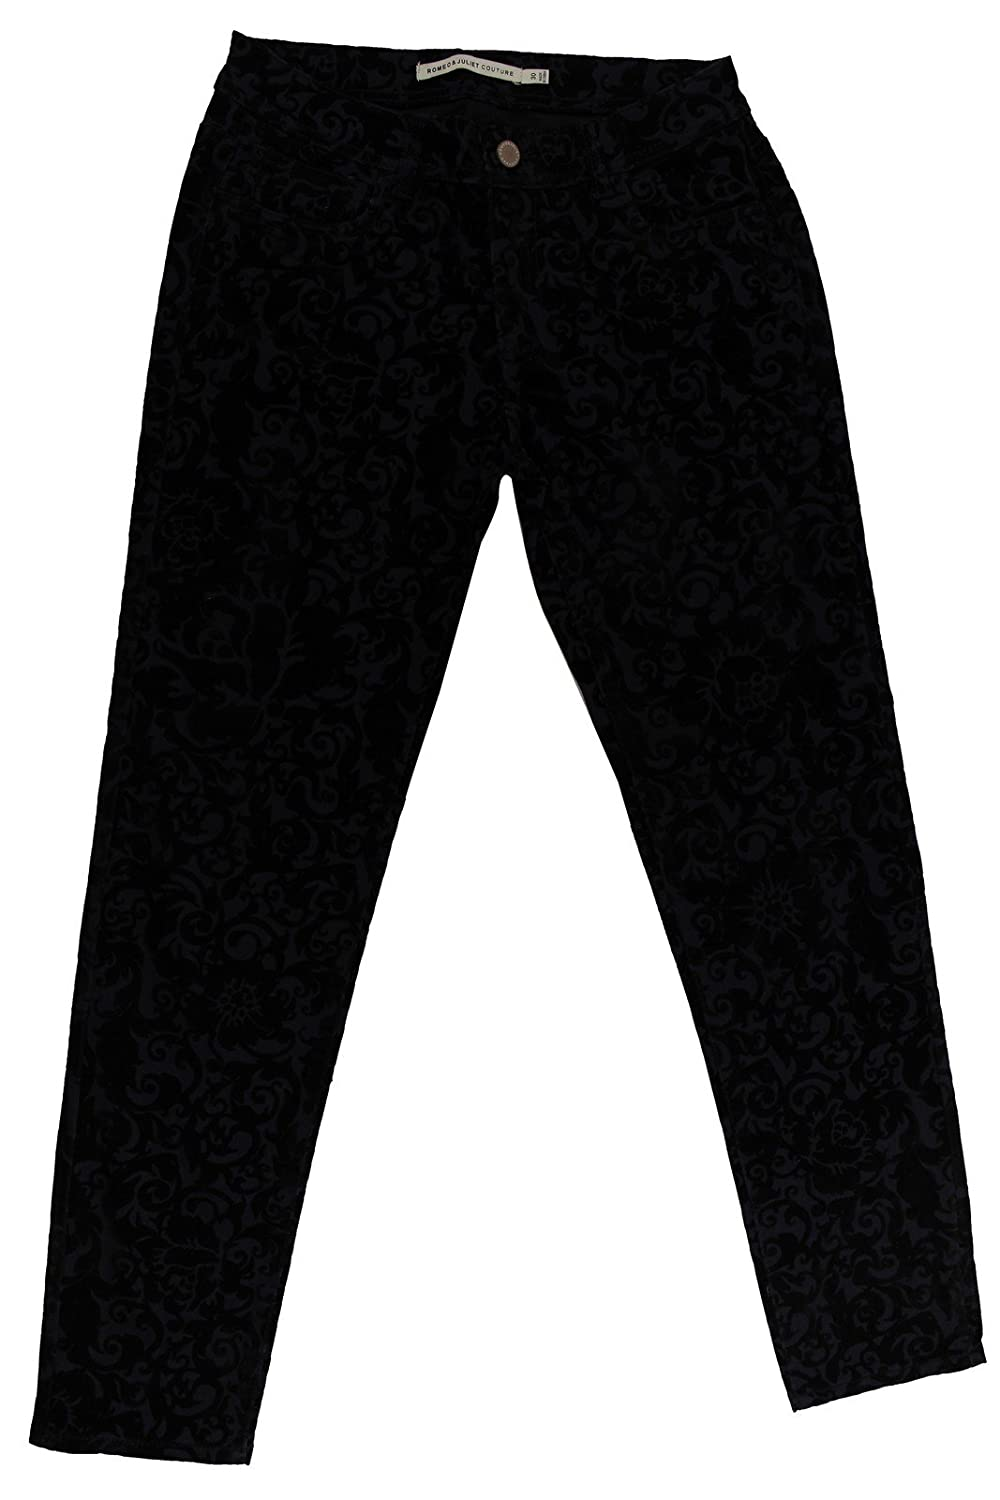 Romeo & Juliet Couture Women's Charcoal Paisley Skinny Jeans